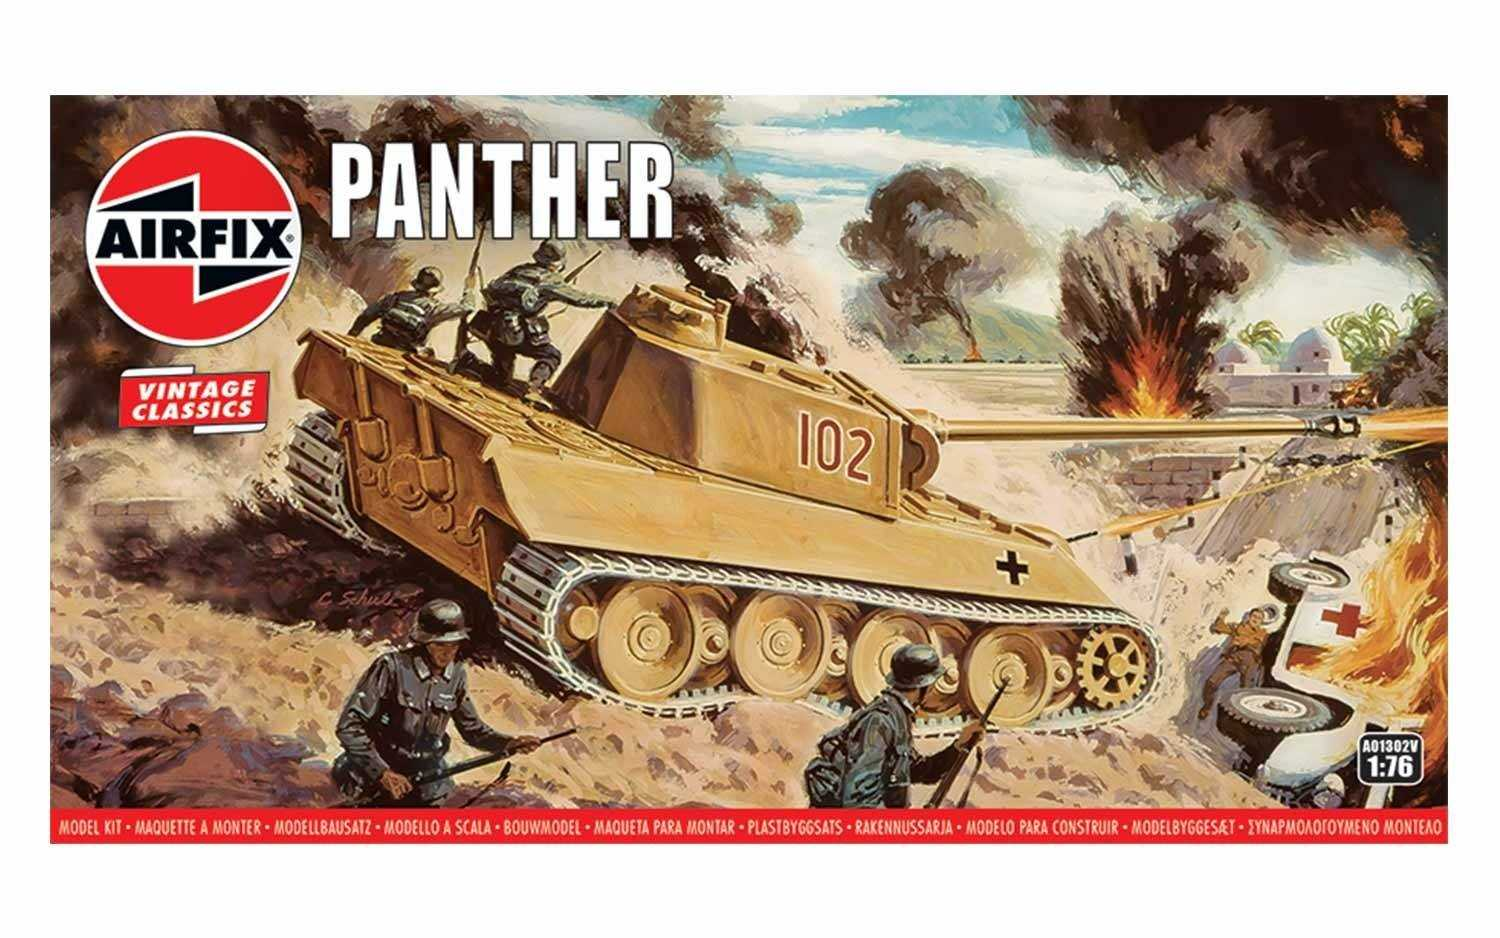 1:76 Panther (Classic Kit VINTAGE Military)